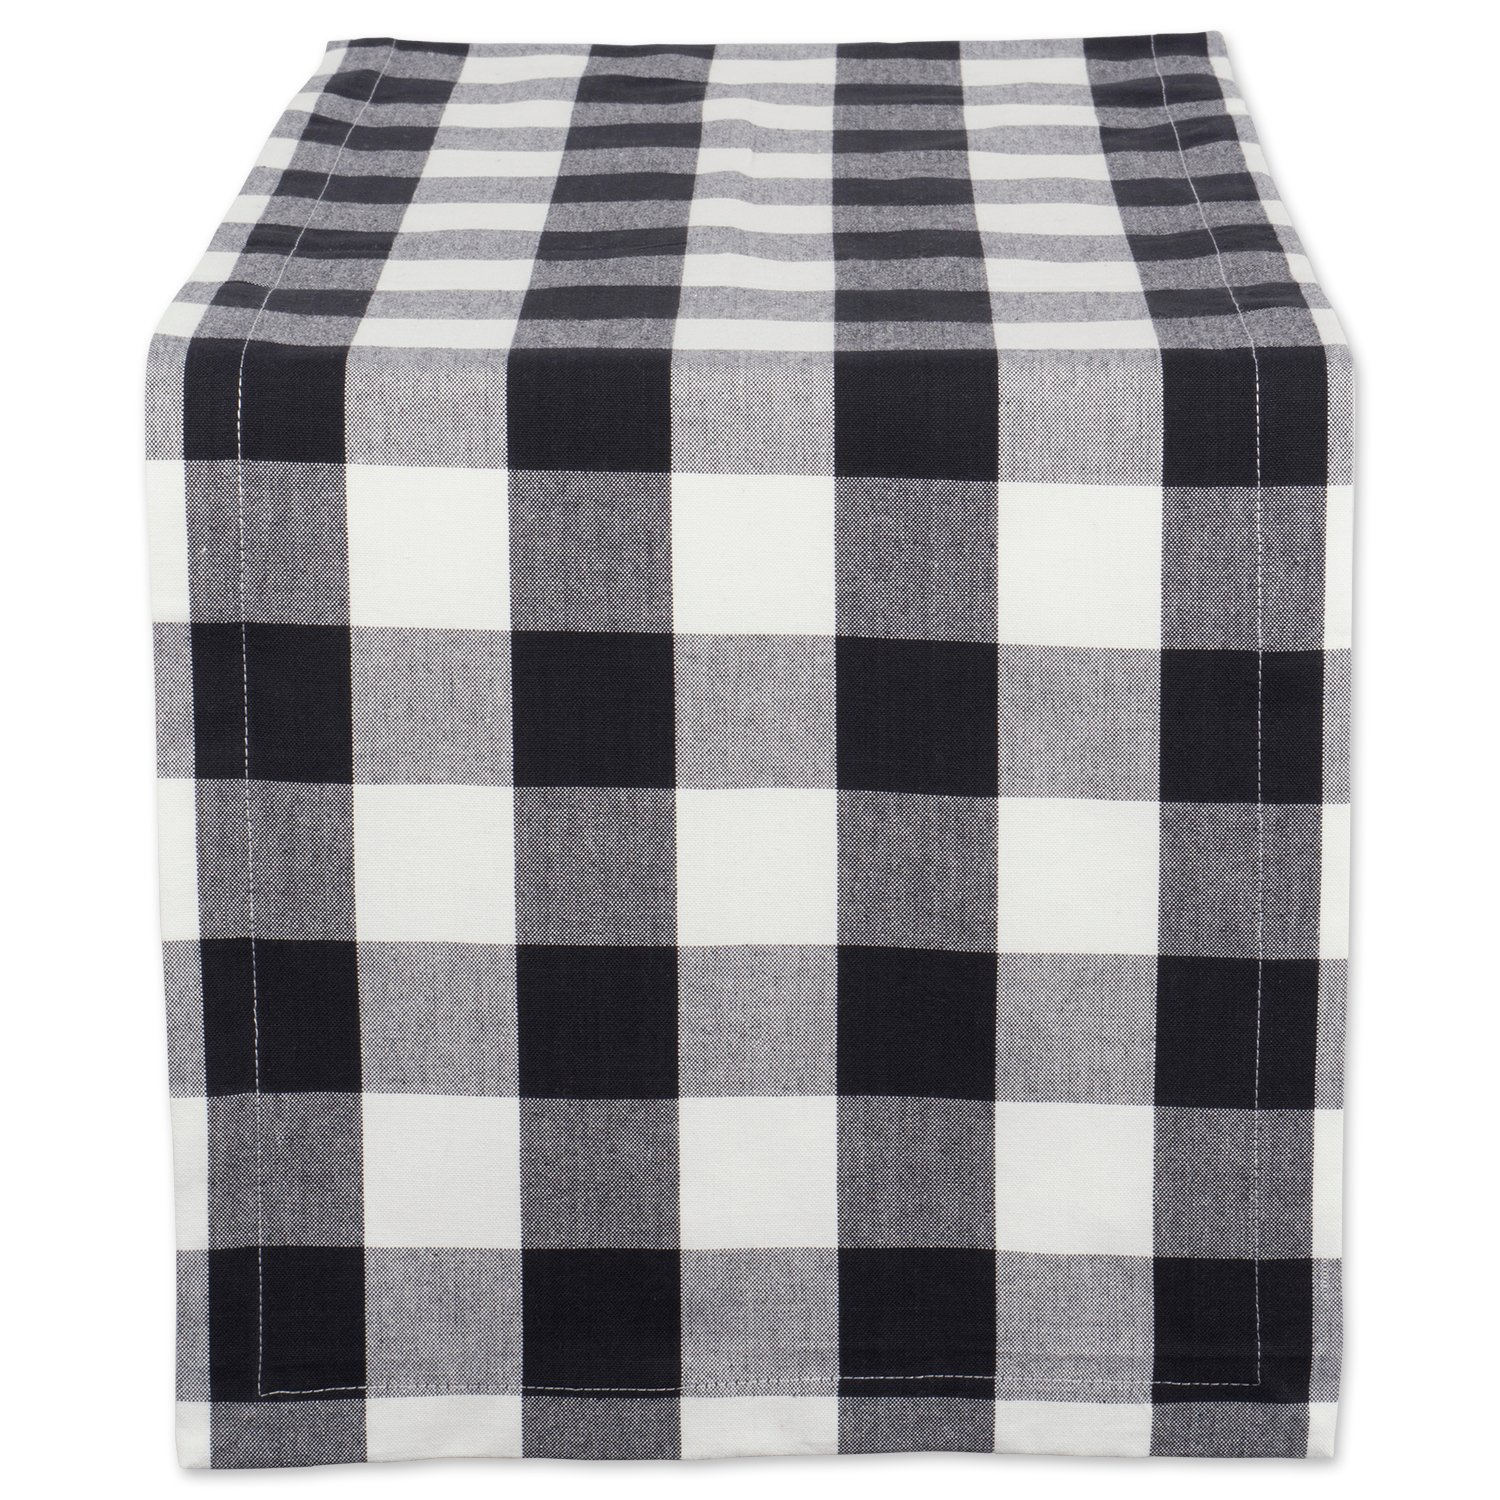 "DII Cotton Buffalo Check Table Runner for Family Dinners or Gatherings, Indoor or Outdoor Parties, & Everyday Use (14x108"",Seats 8-10 People), Black & White"